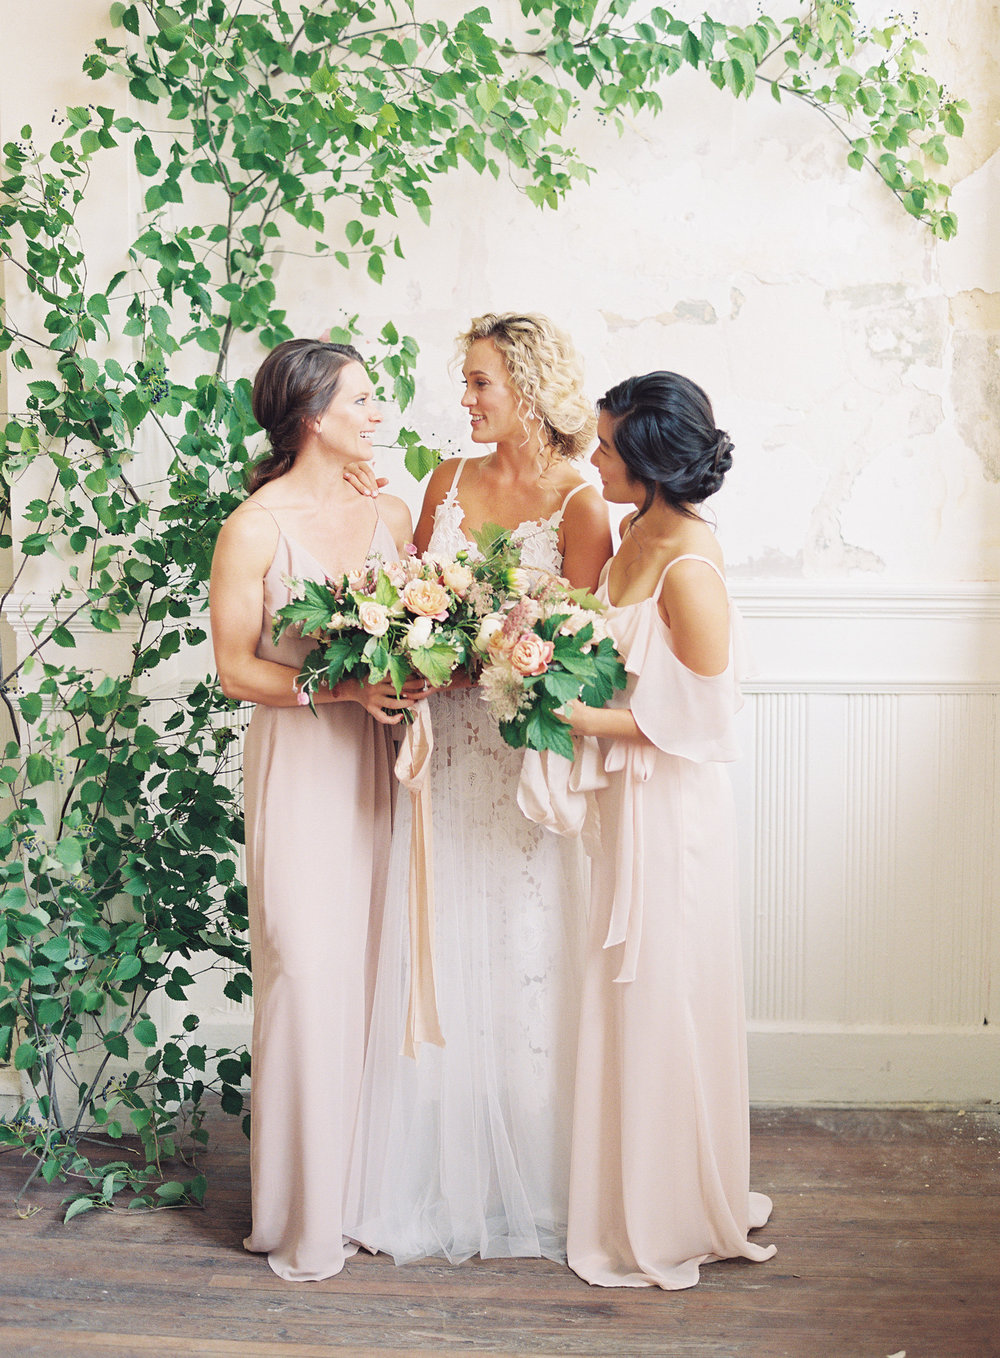 Blossom and Vine Sophie Felts Washington DC Wedding Flowers Florist